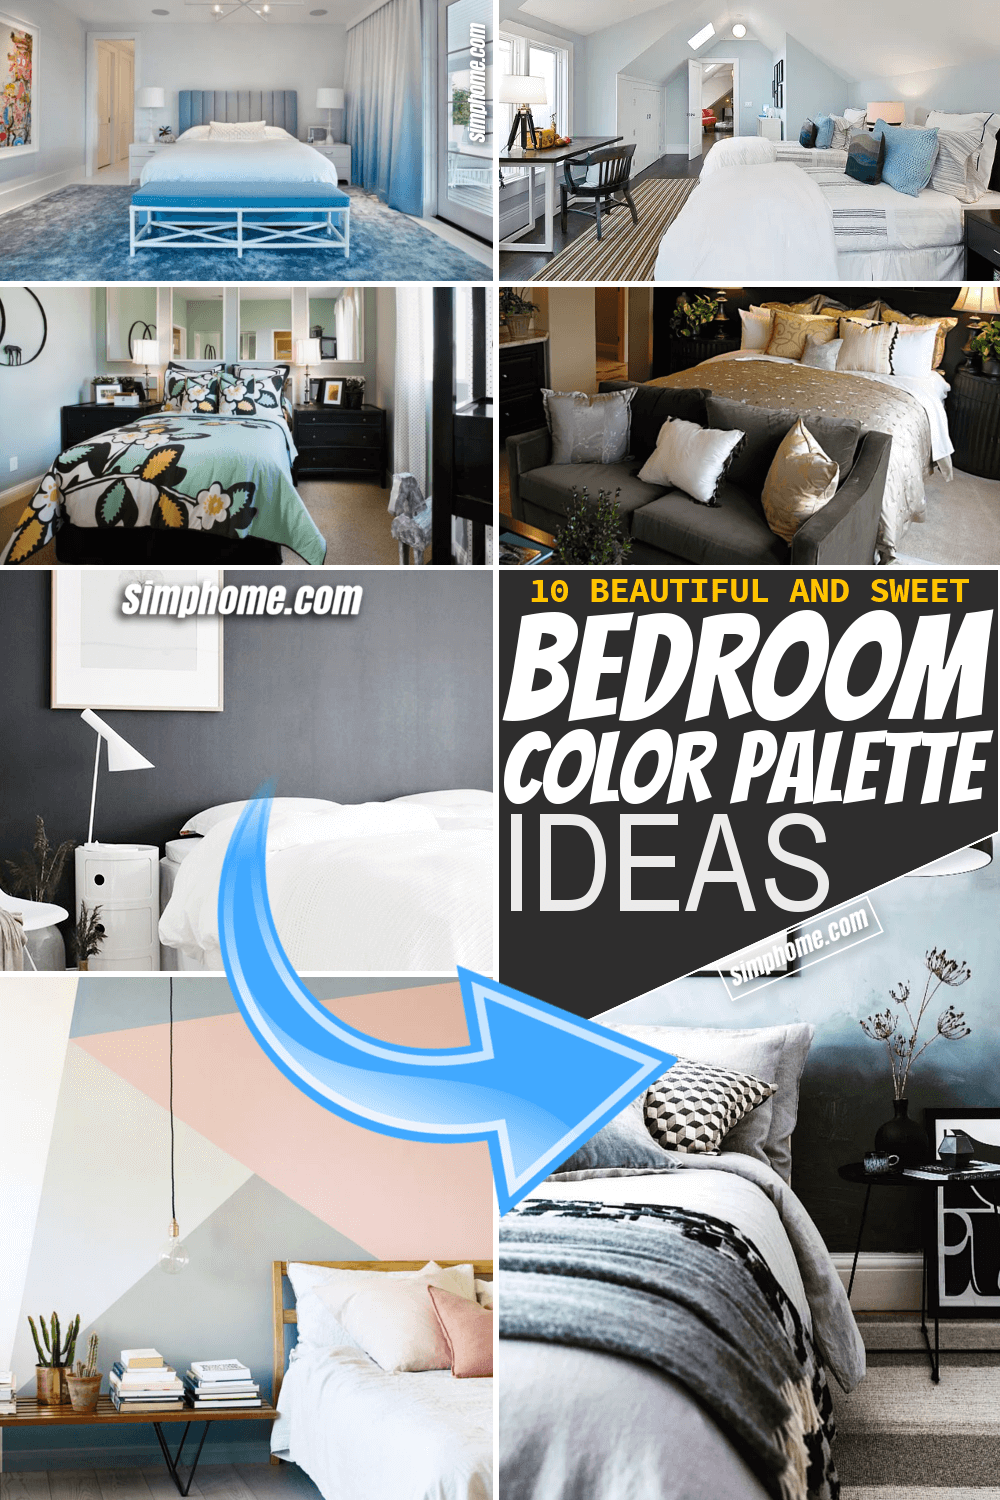 Simphome.com 10 bedroom color palette ideas